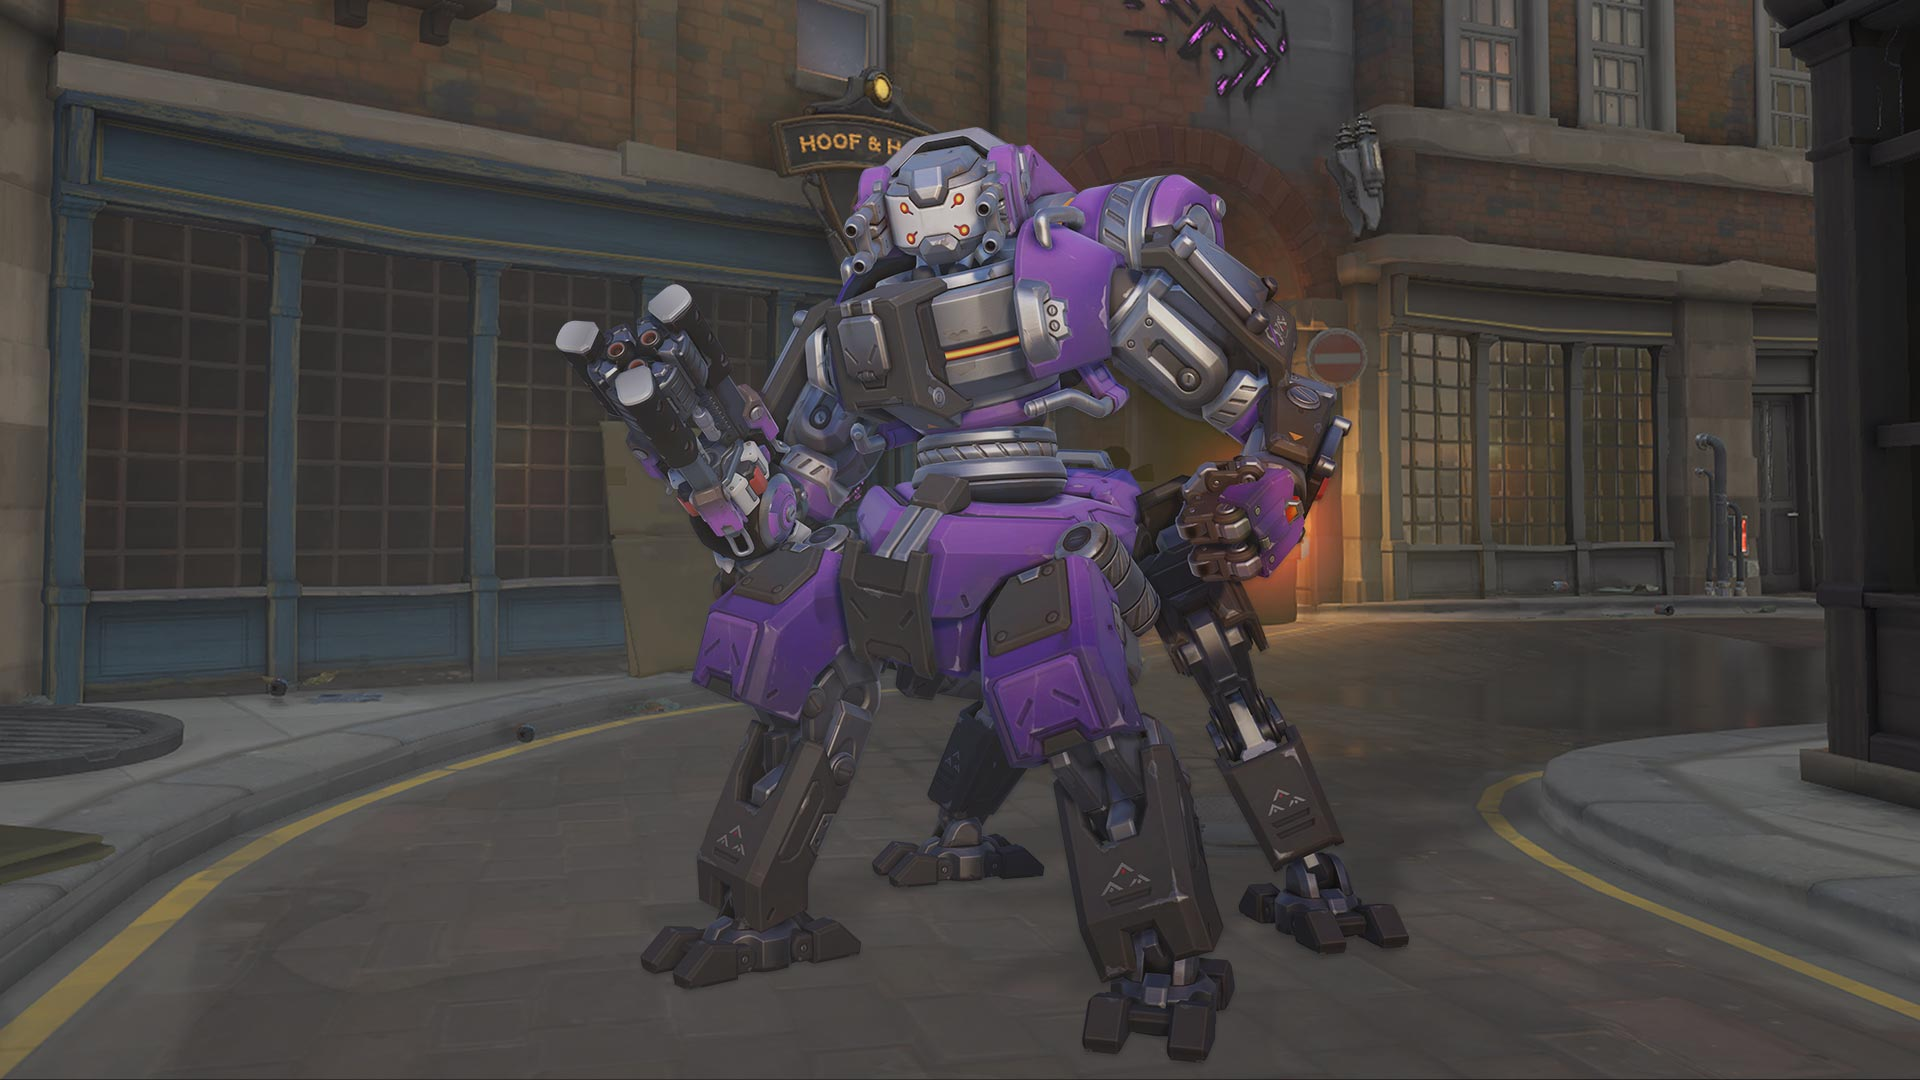 OW Les Skins De Linsurrection DOverwatch